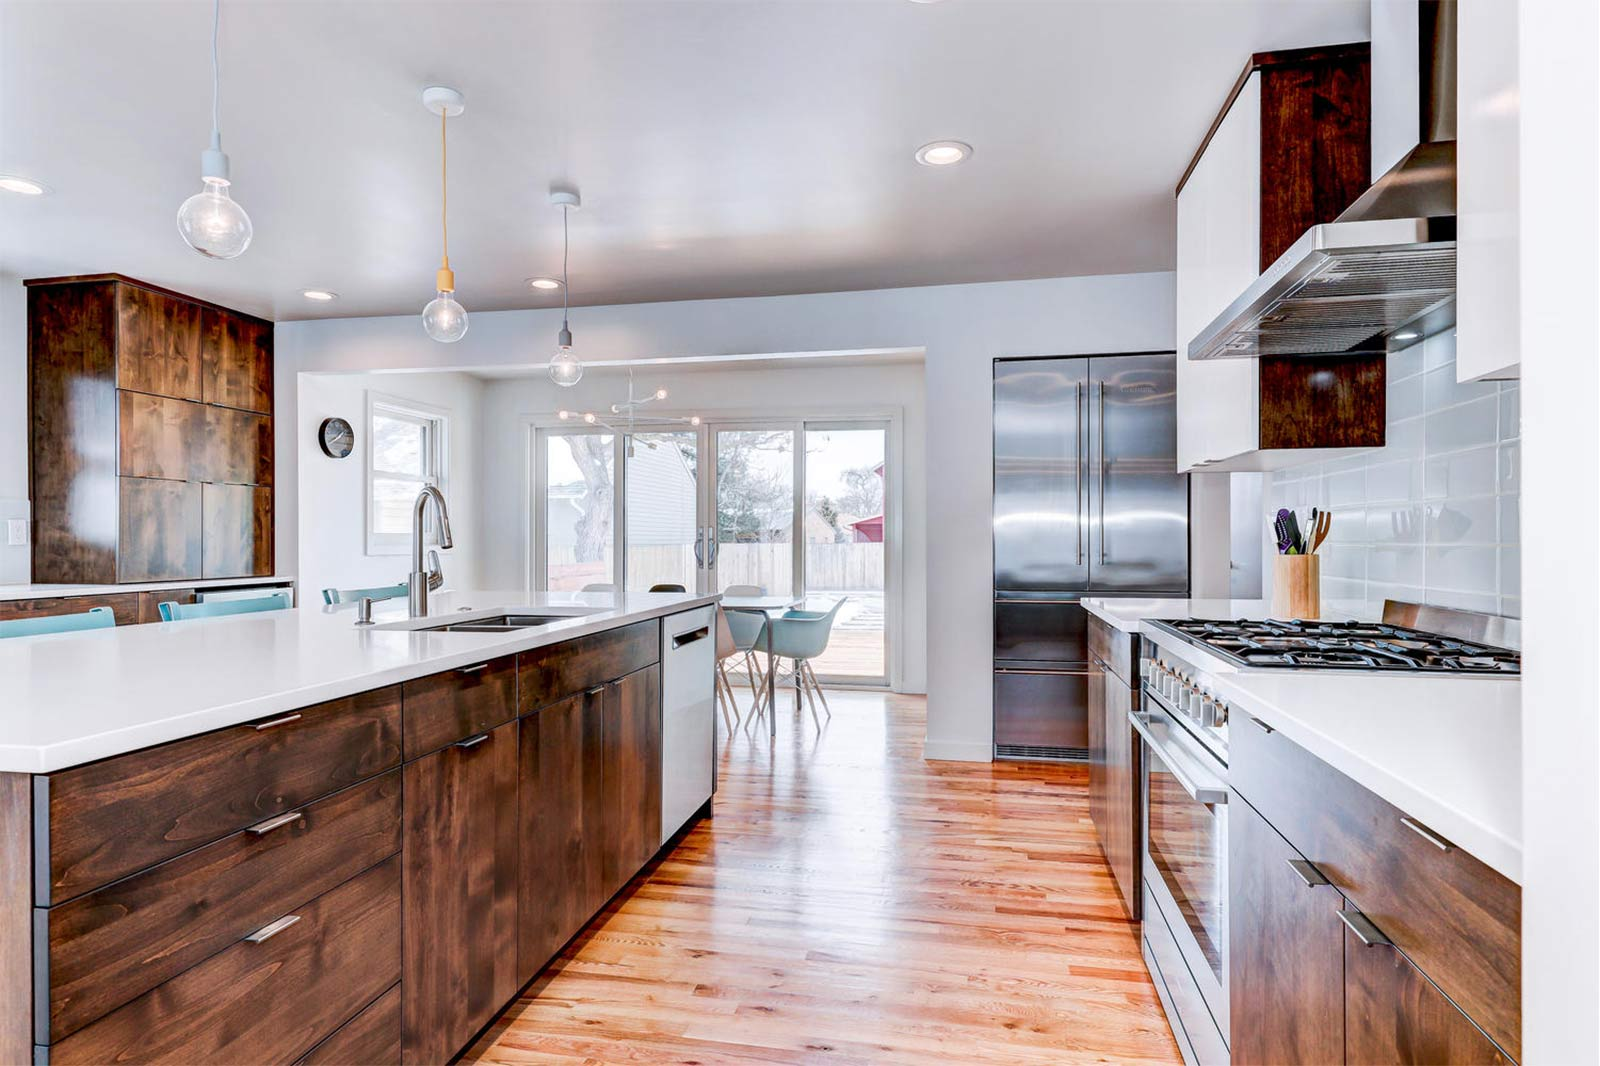 pict remodel omahafor idaho of excellent ideas design and trend kitchens omaha bathroom home inspiring files your boise kitchen by